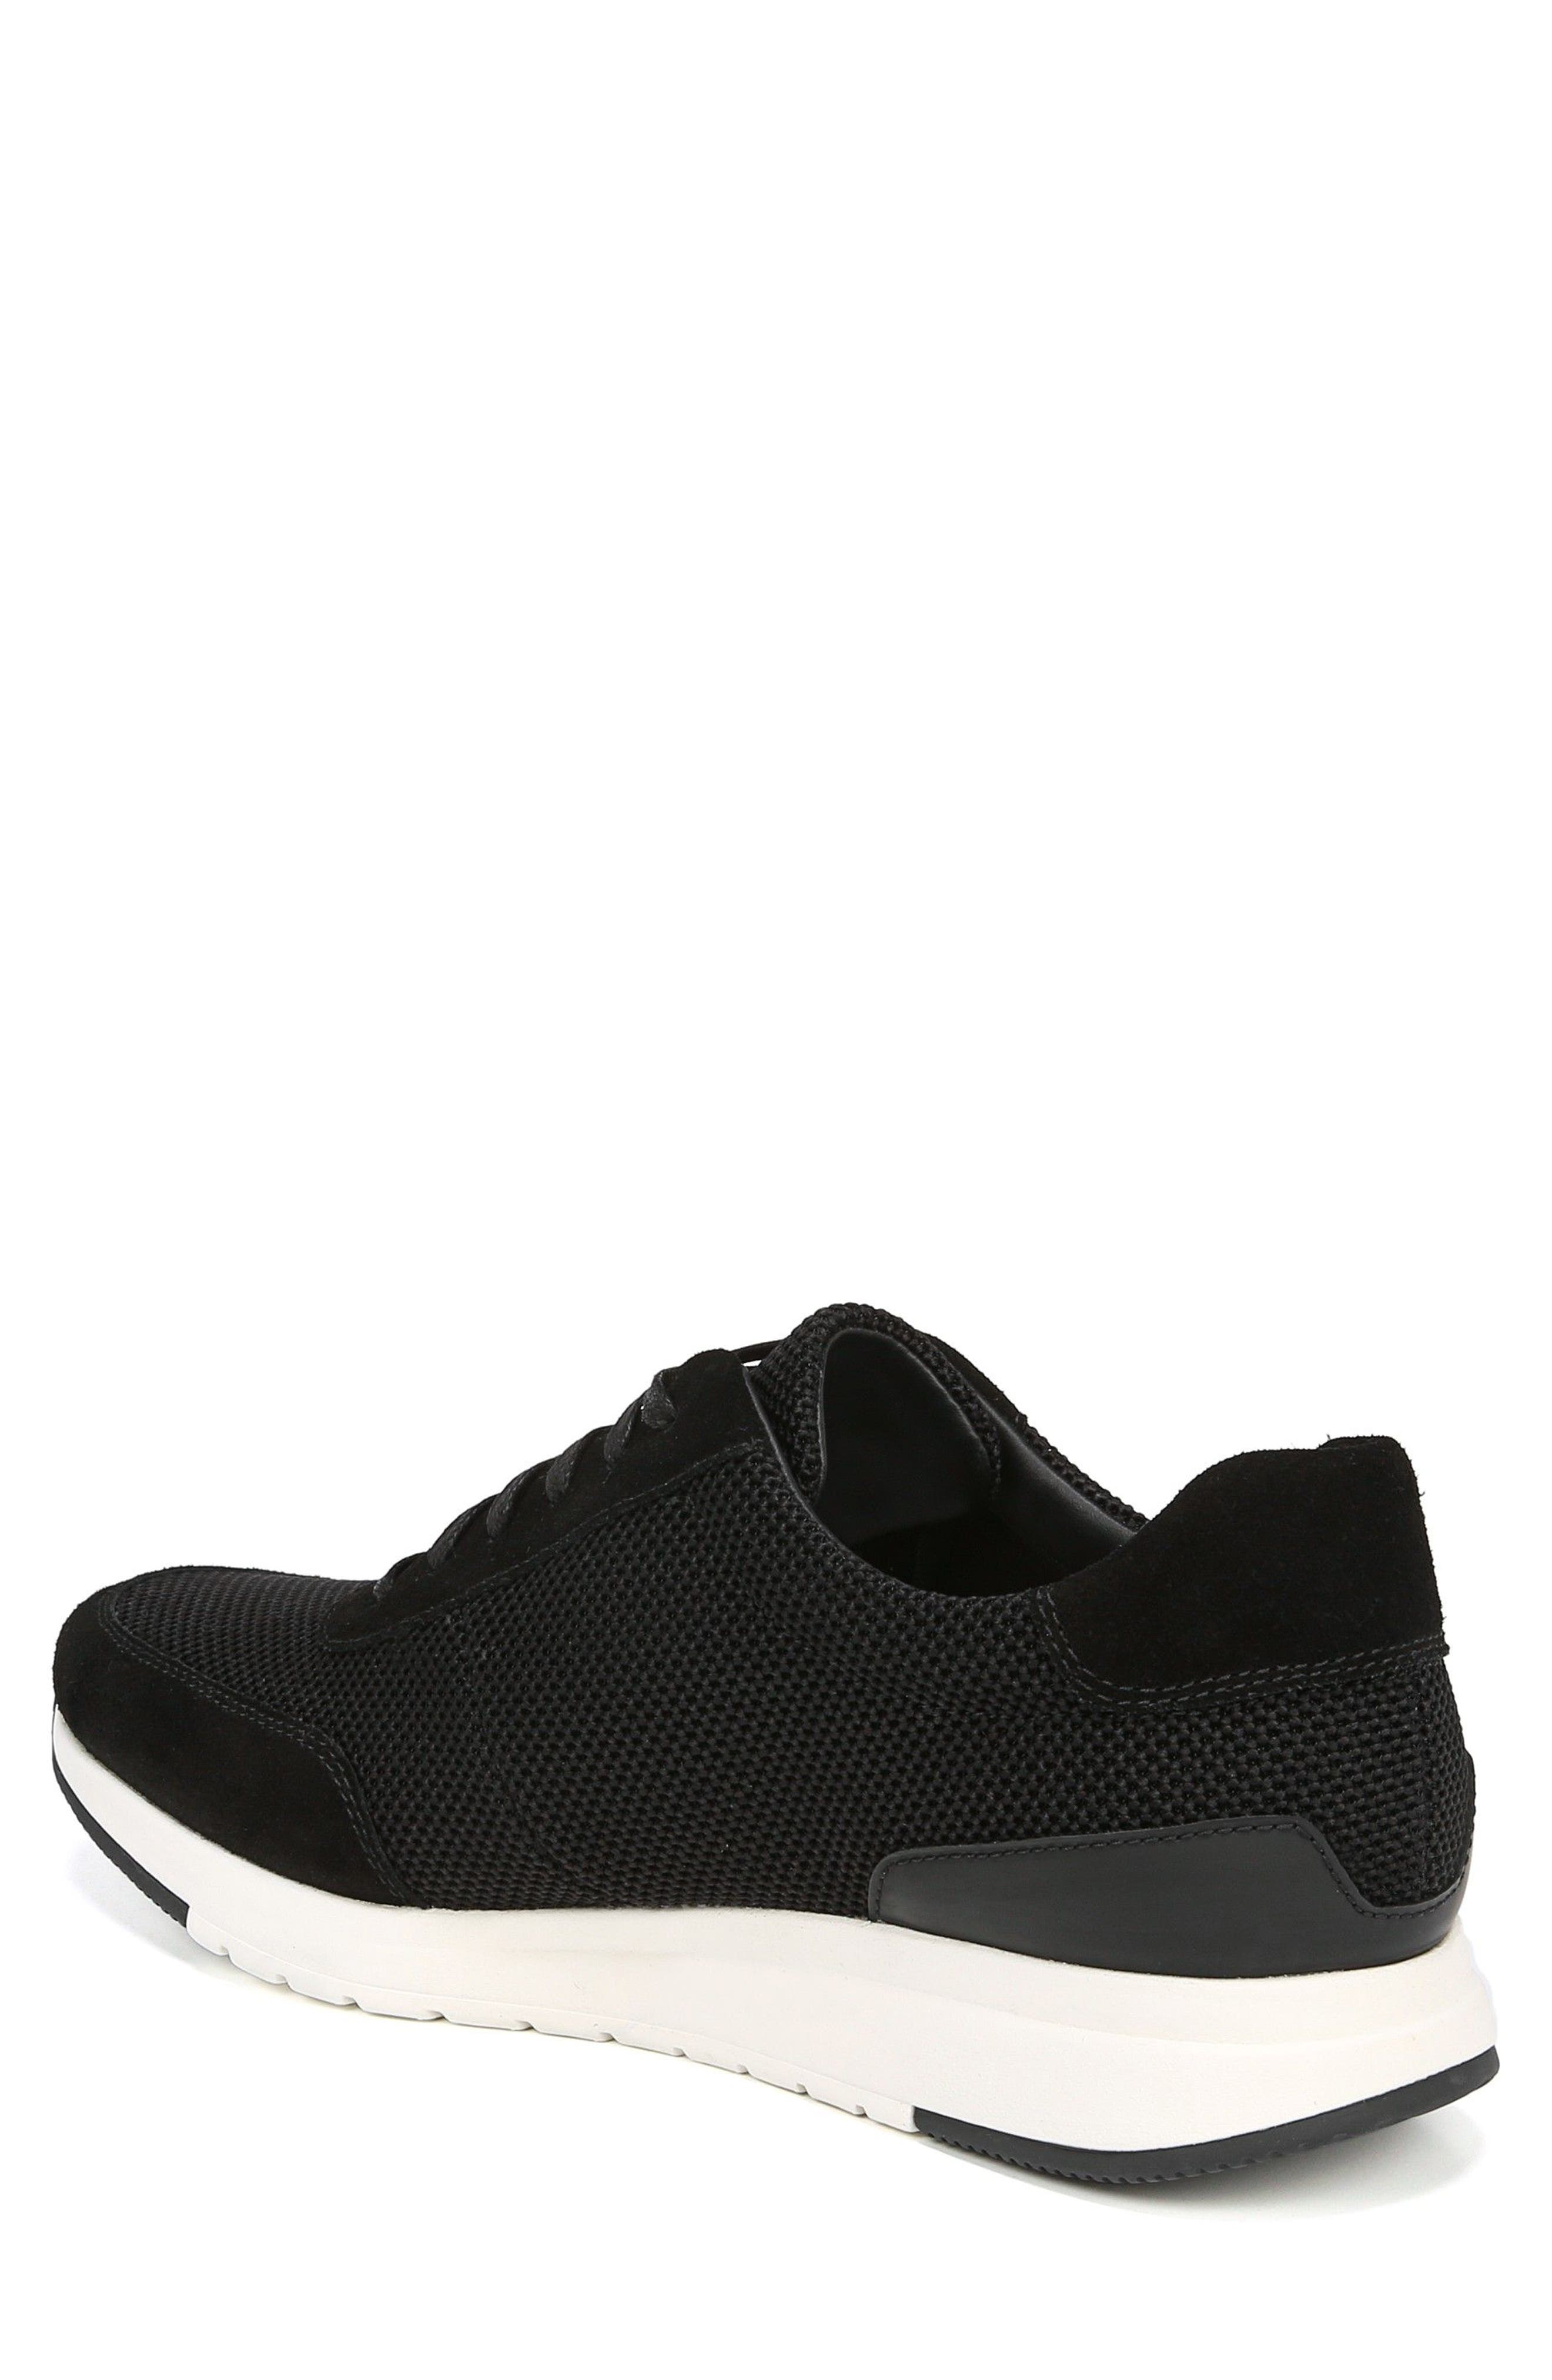 Payton Mesh Sneaker,                             Alternate thumbnail 2, color,                             BLACK